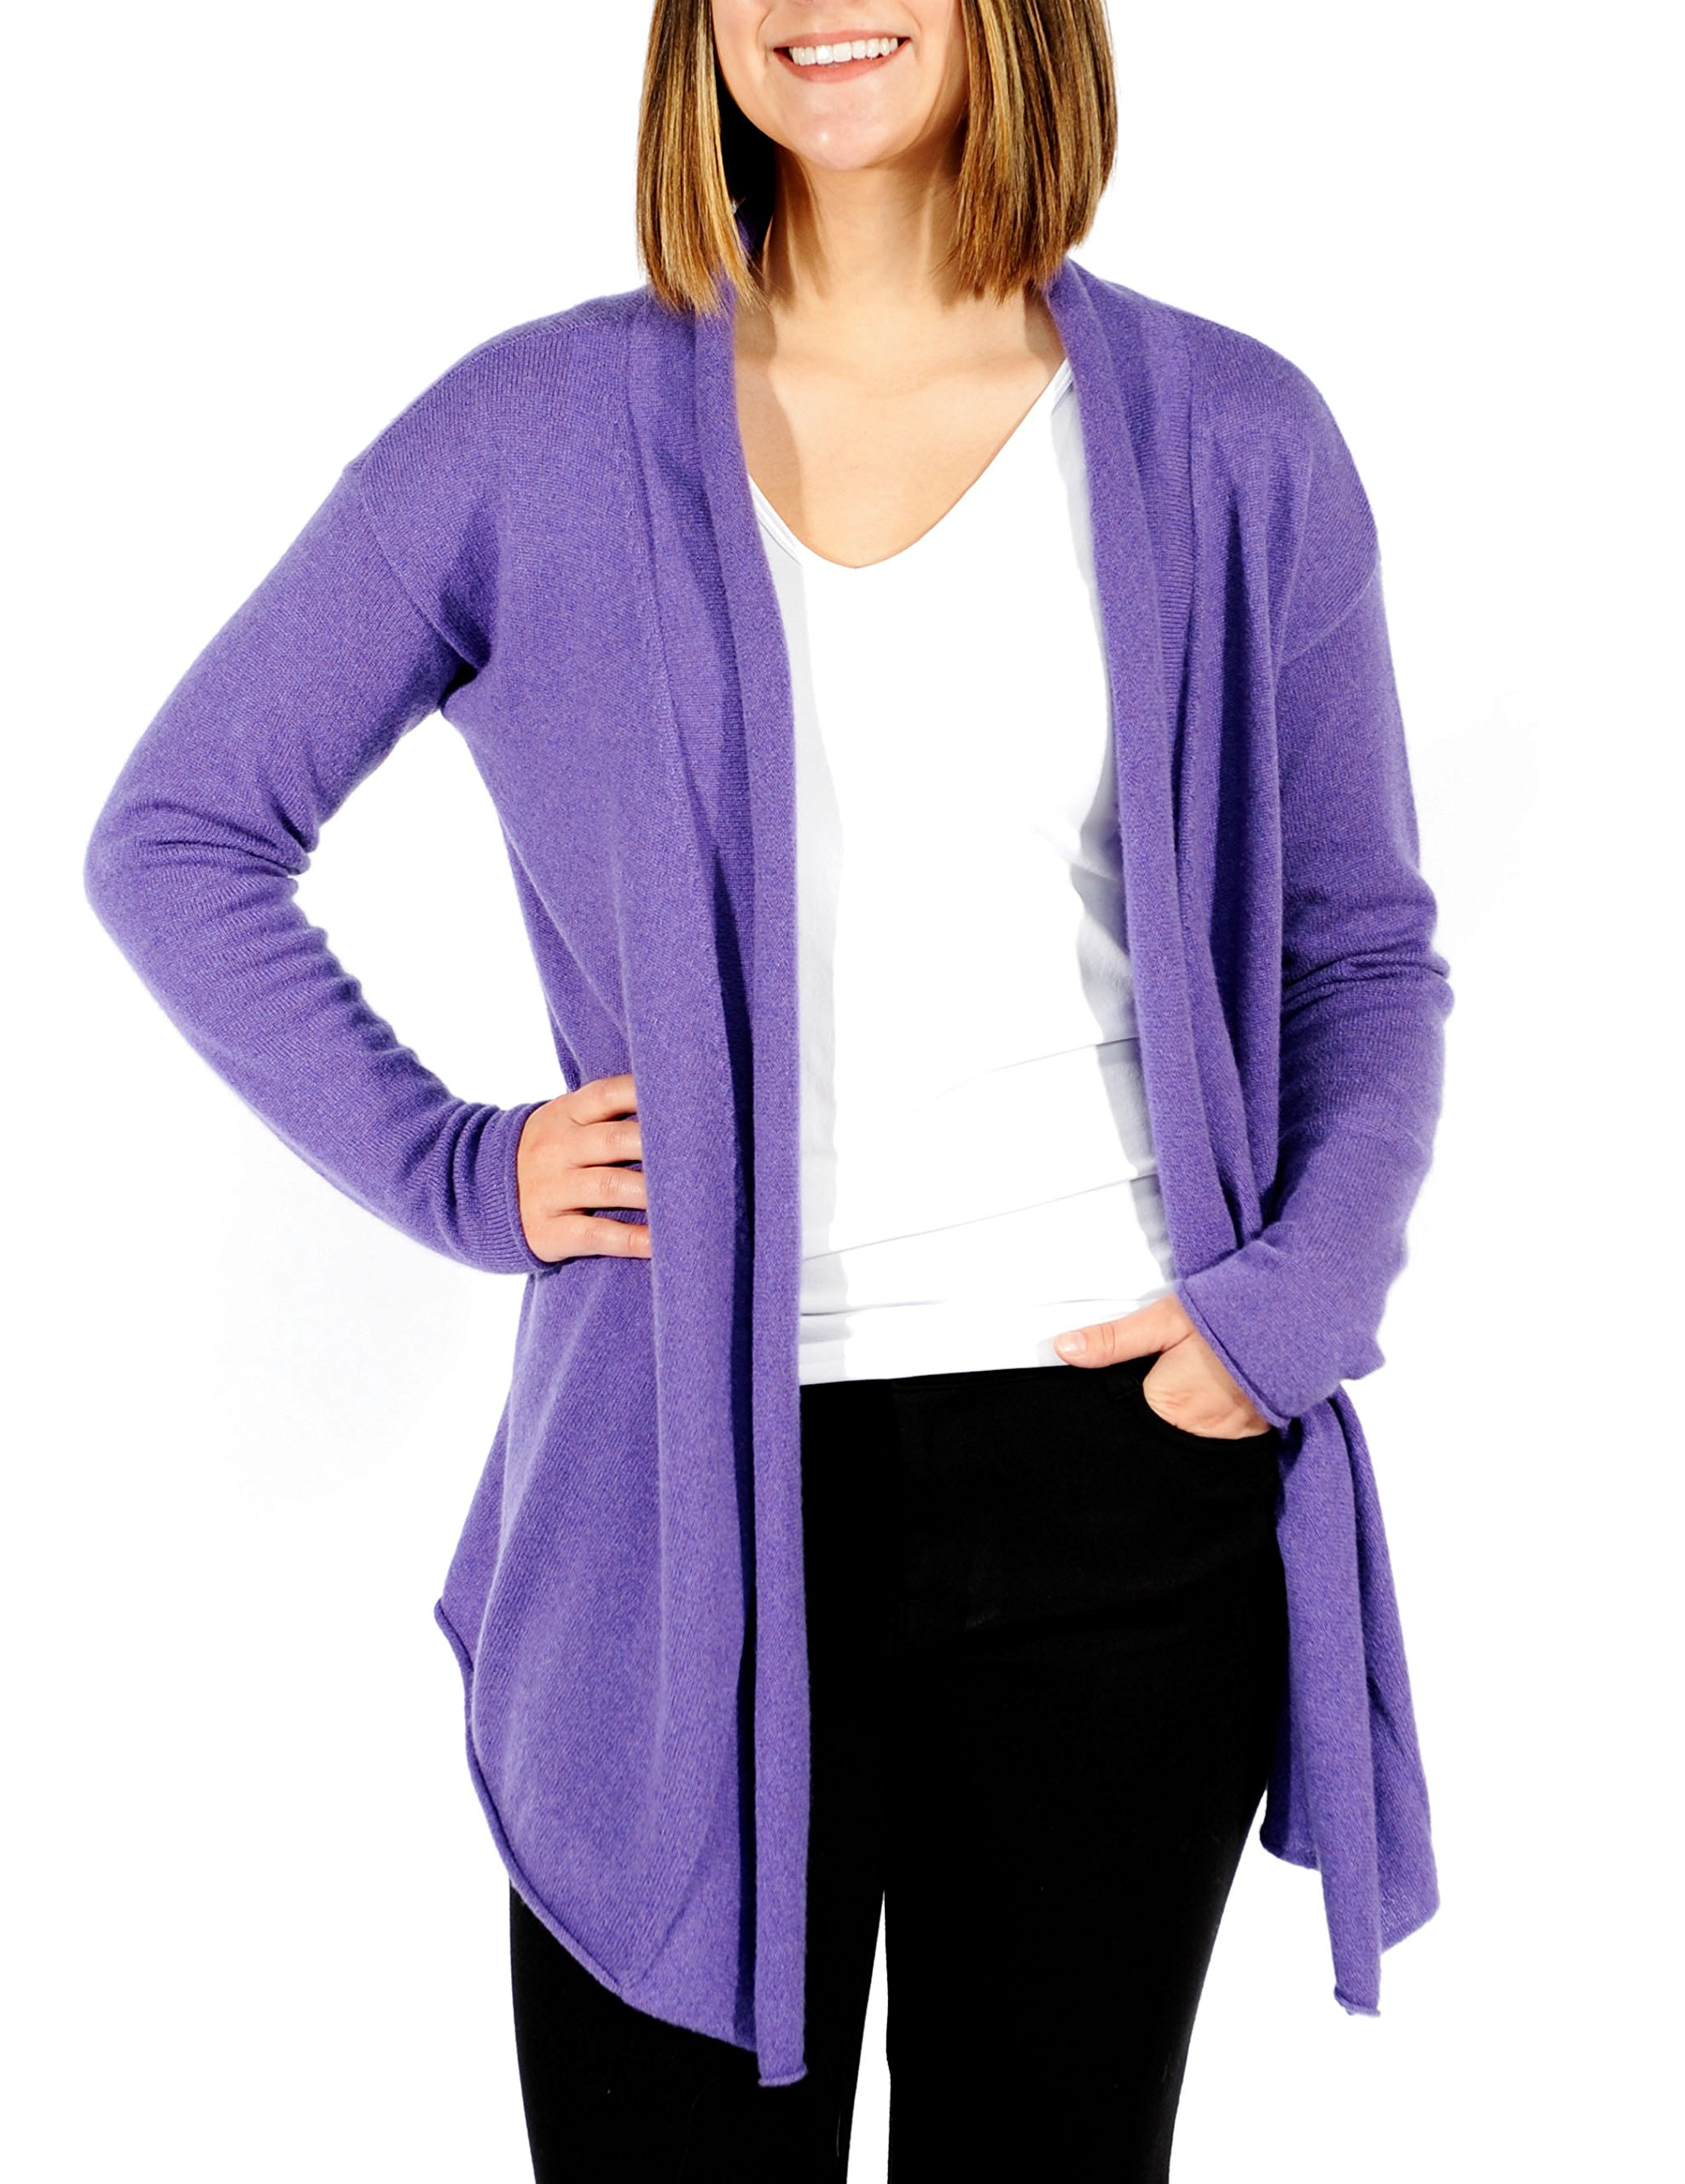 Gigi Reaume 100% Cashmere Womens Sweater, Open Front Cardigan, Shawl Collar Swing Style (Large, Amethyst) by Gigi Reaume